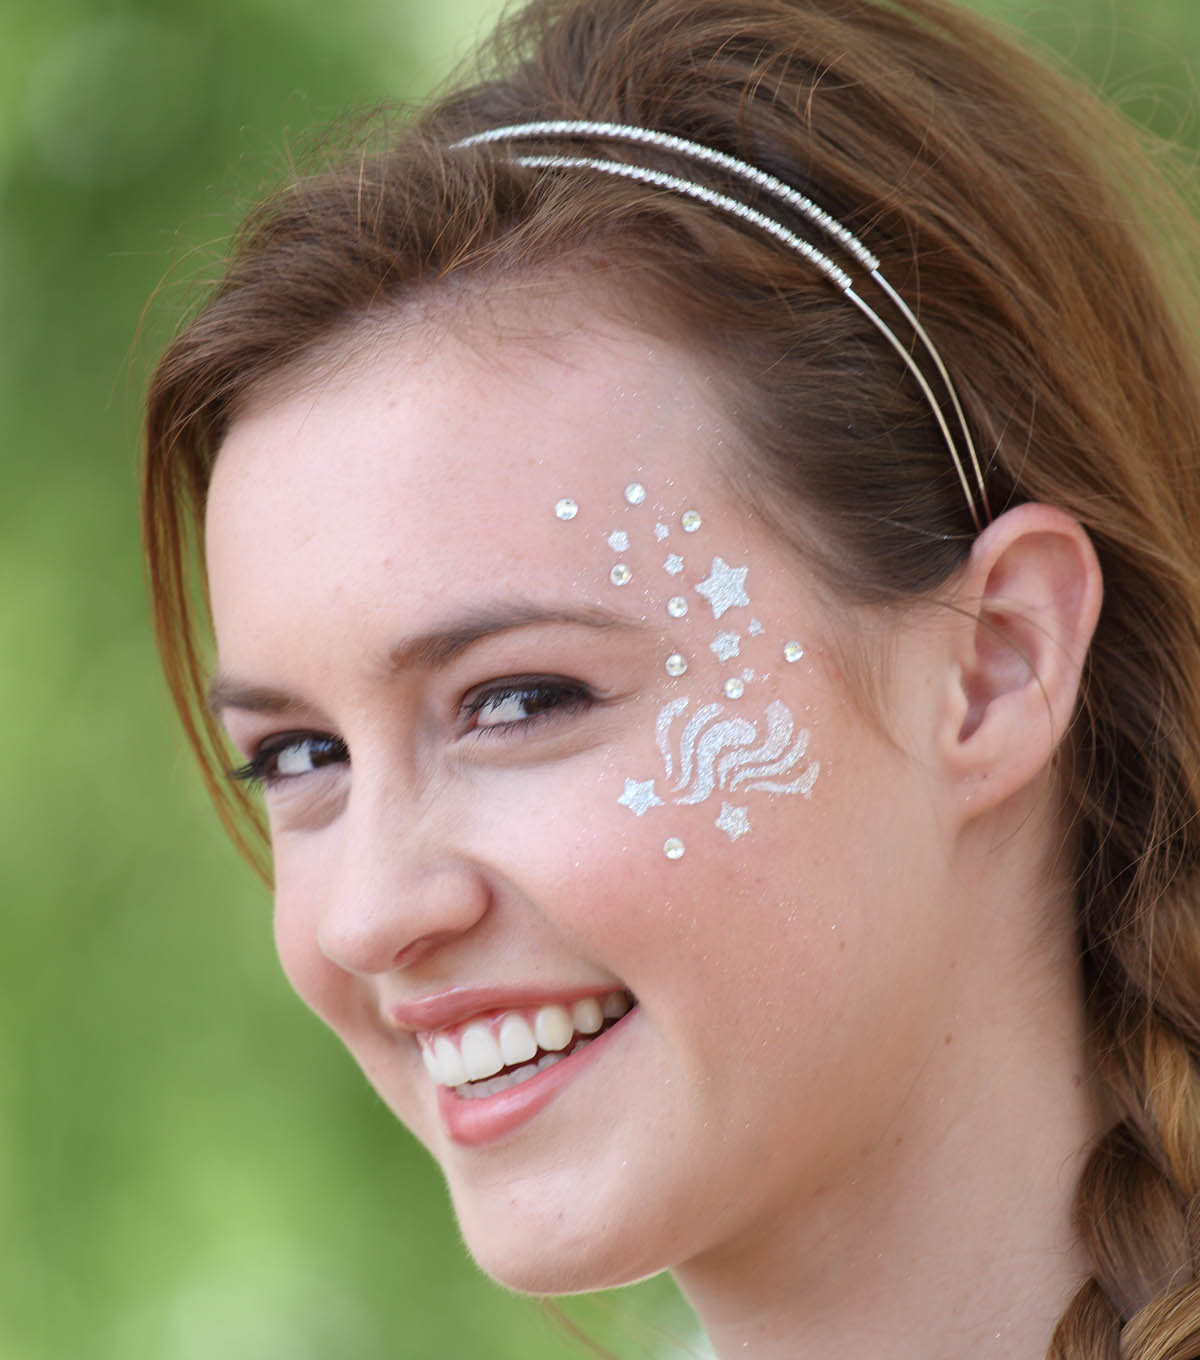 Prom Night Beauty Body Art